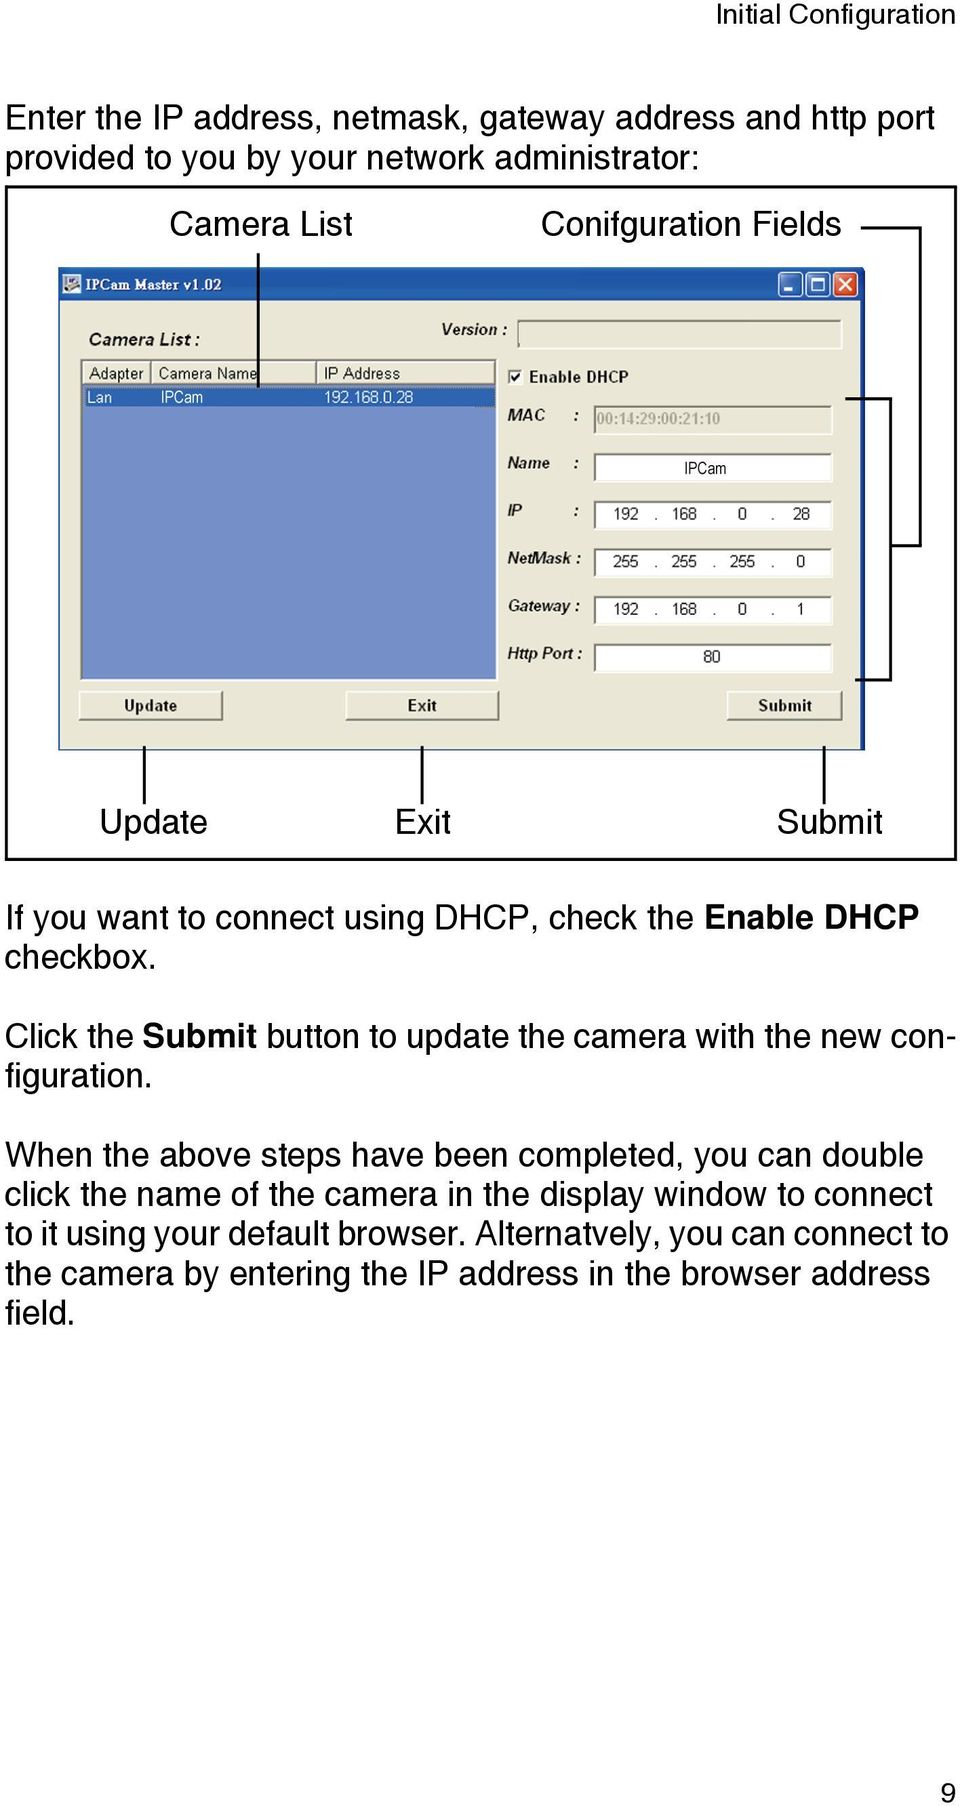 Click the Submit button to update the camera with the new configuration.